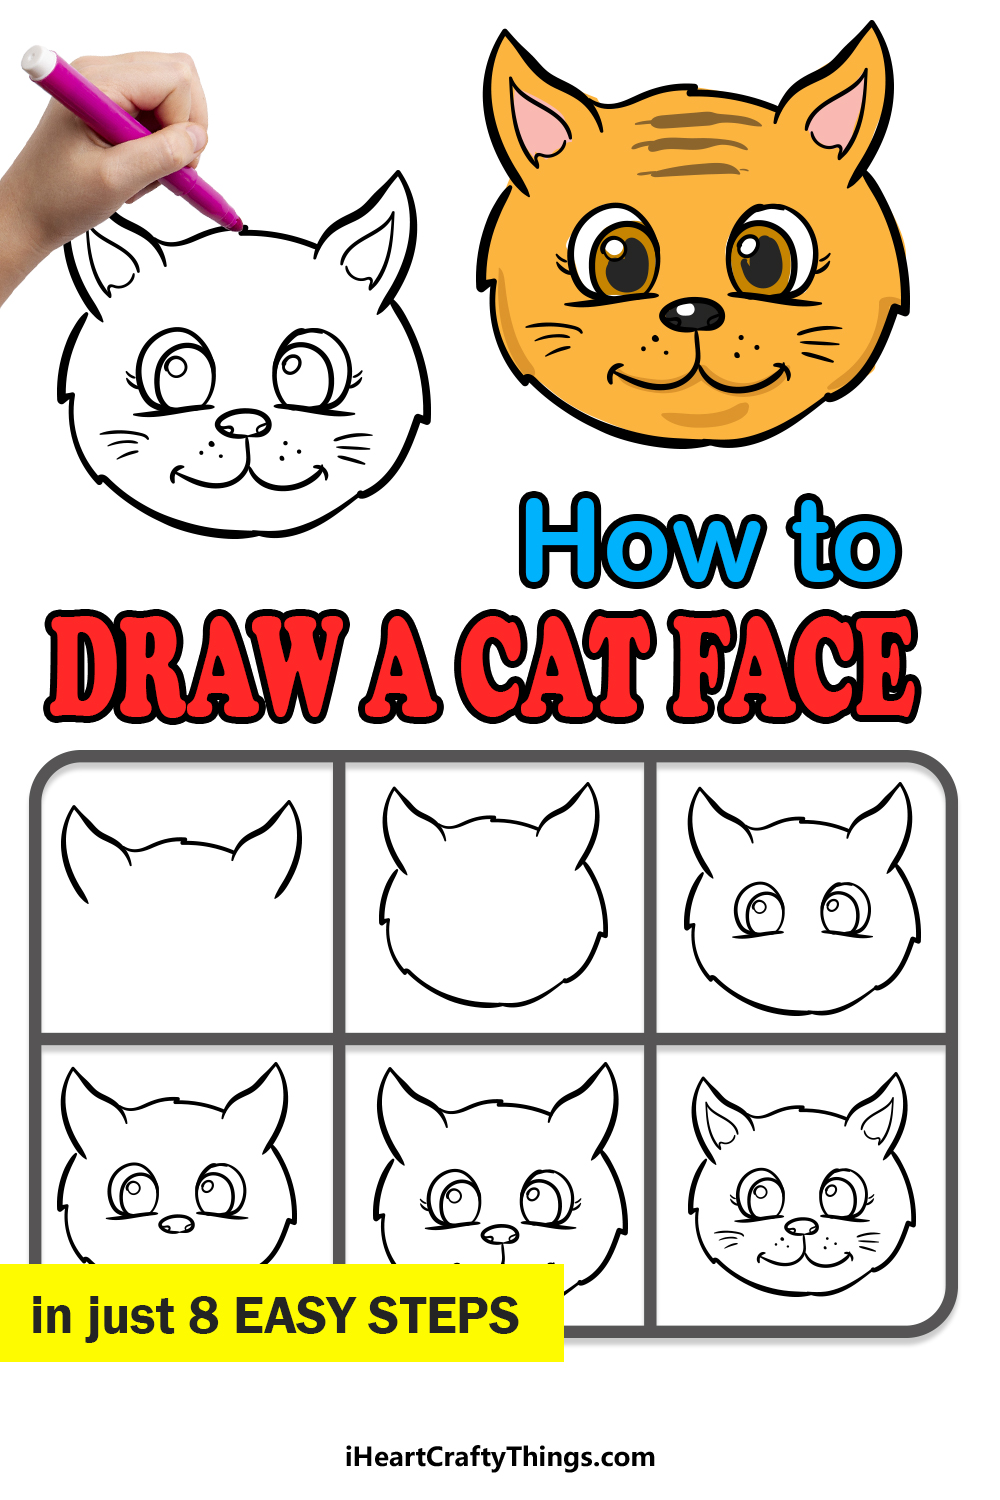 how to draw a cat face in 8 easy steps